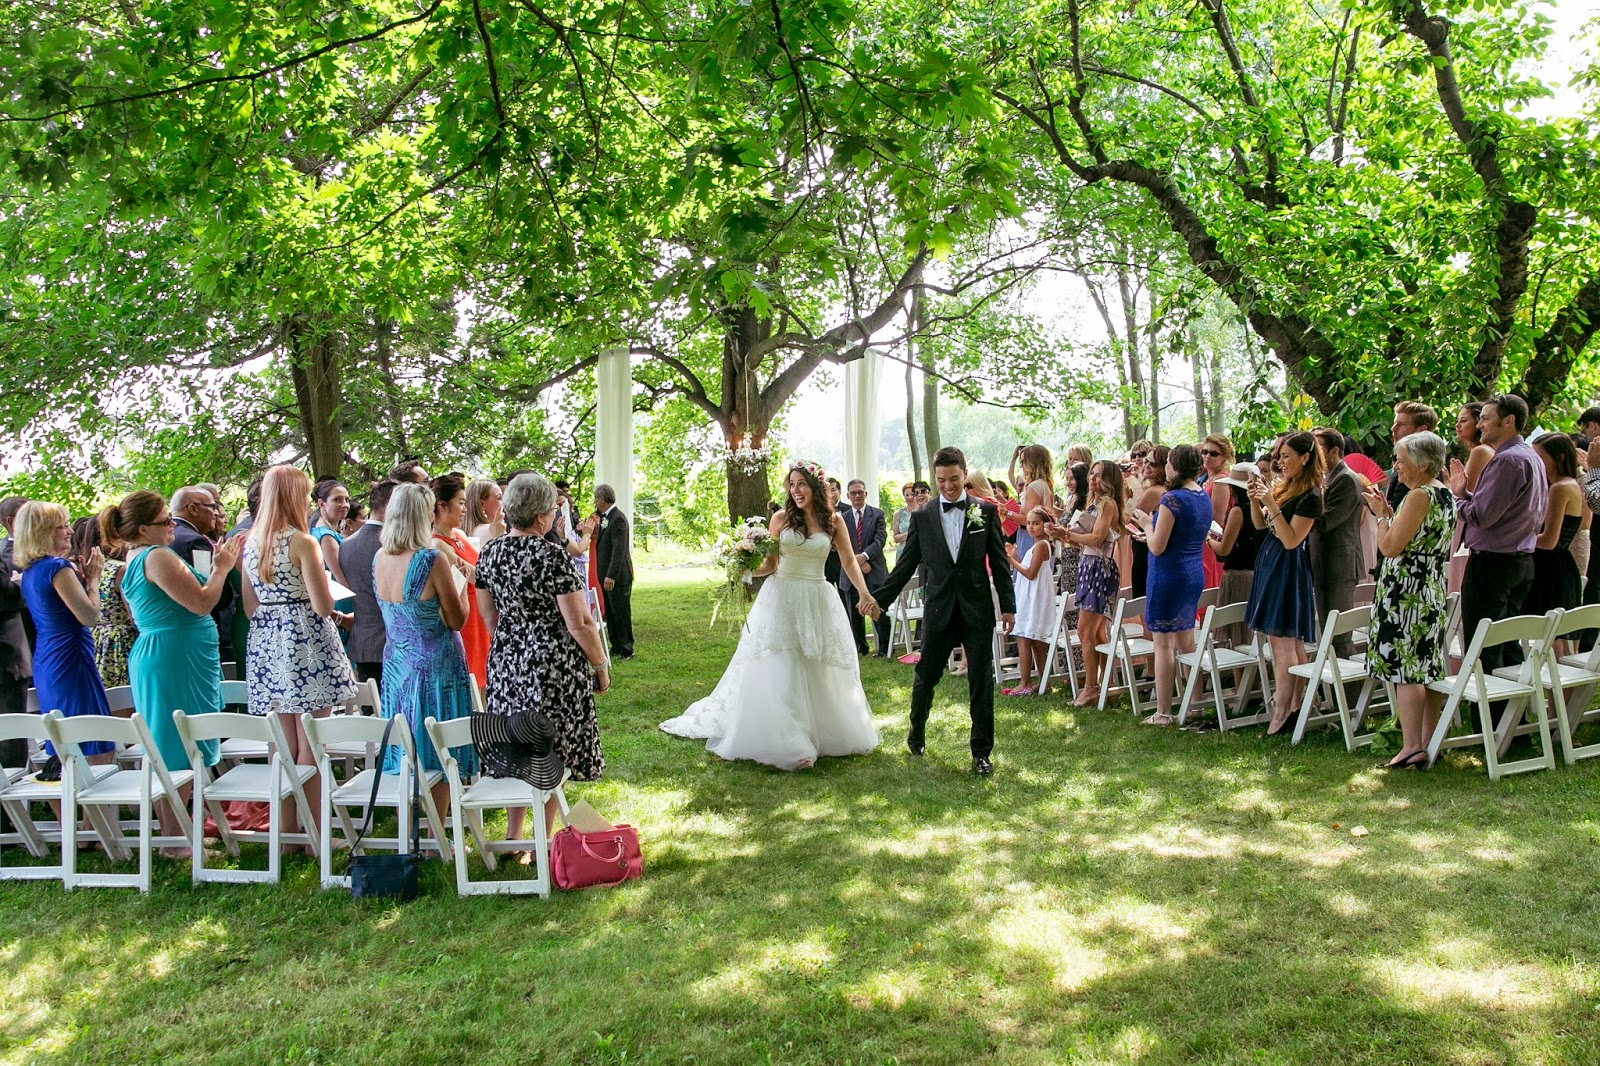 niagara wedding planner a divine affair winery kurtz orchard